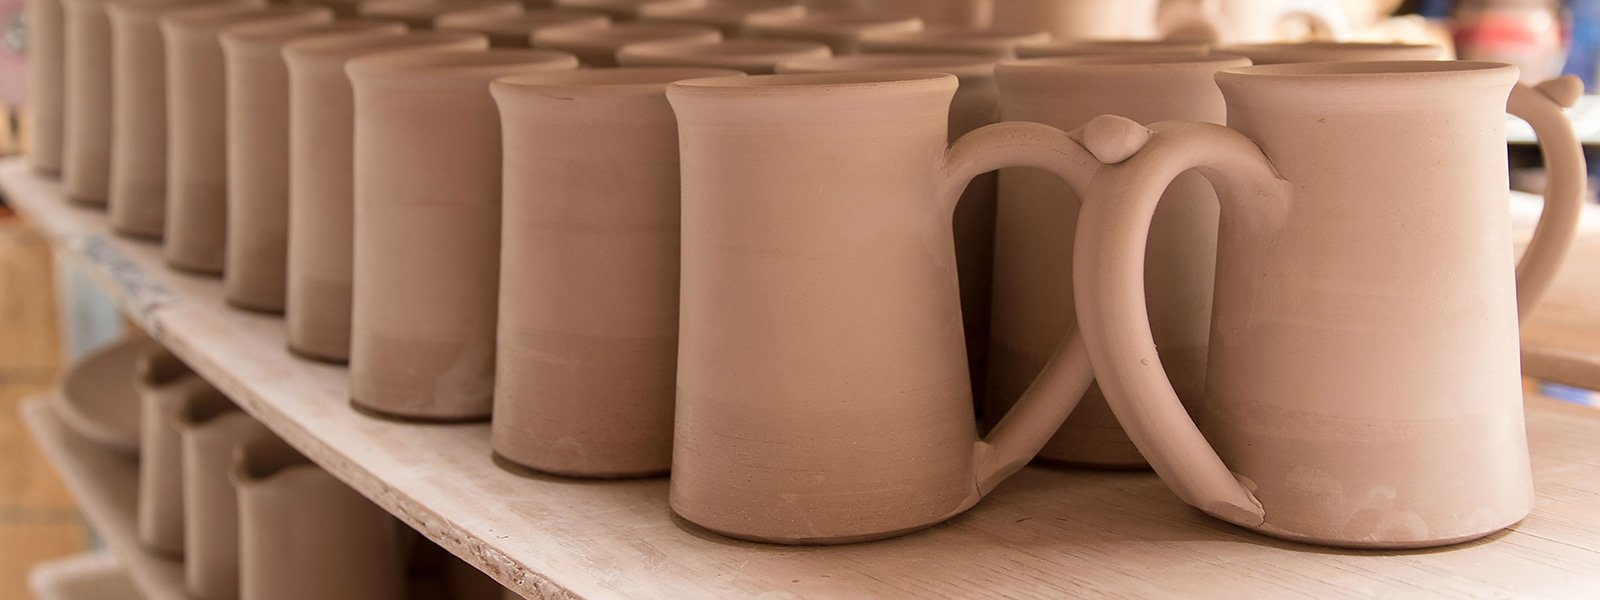 mugs-clay-drying-mountain-arts-pottery_2048x.jpg